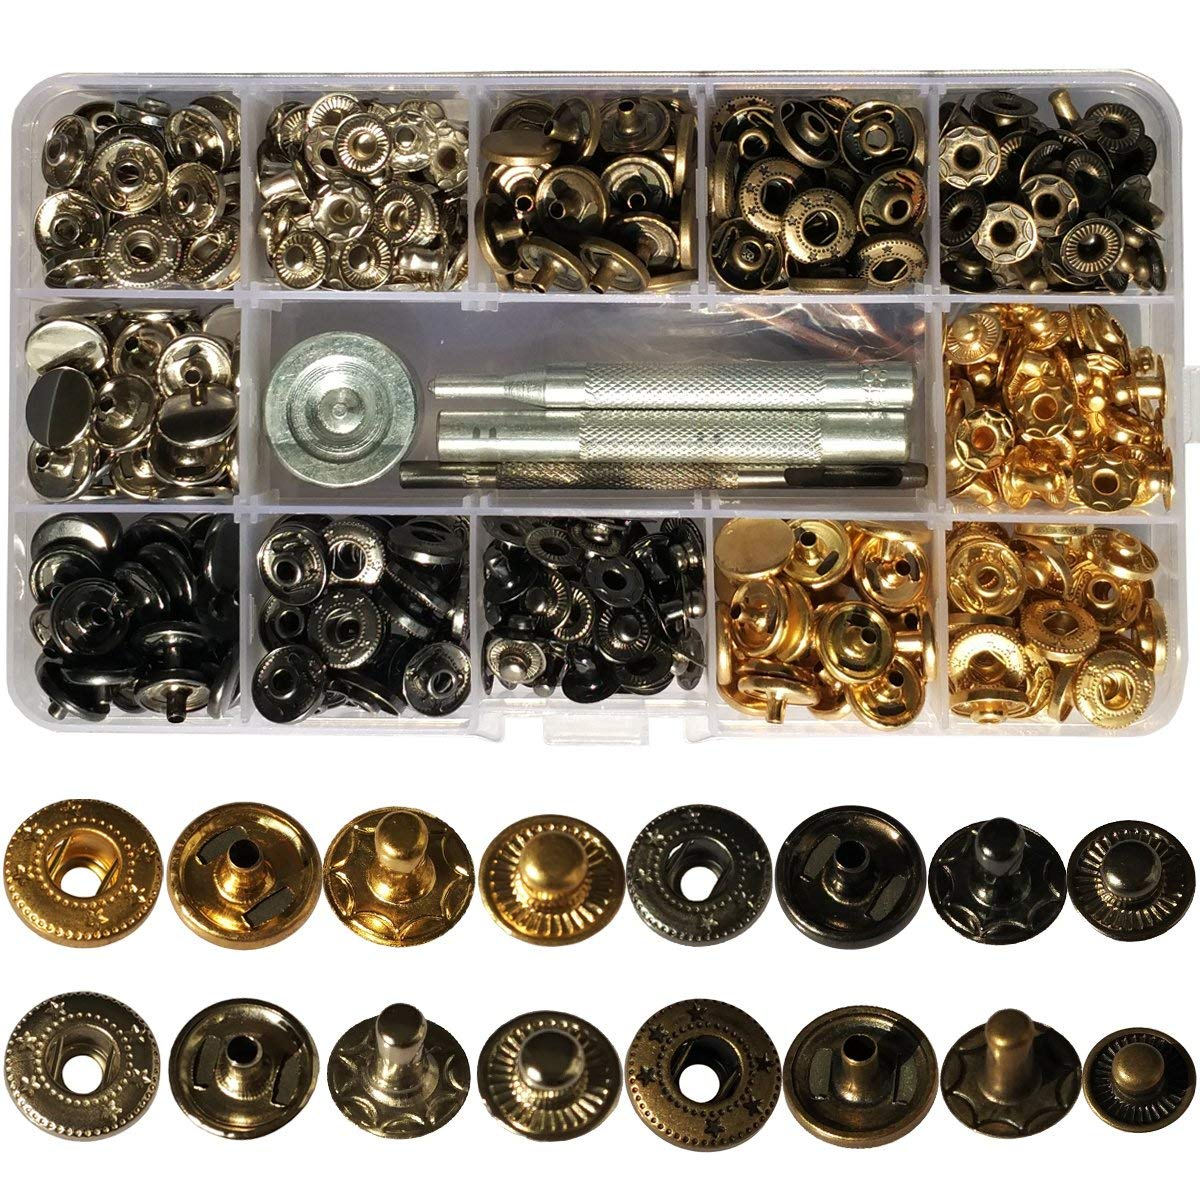 120 Sets Snap Fastener Kit Button Tool Press Studs Fastener Snap on Set Clothing Snaps Kit Fixing Tool (633(12.5mm)) 4 Colors for Leather Craft Repairing Decoration